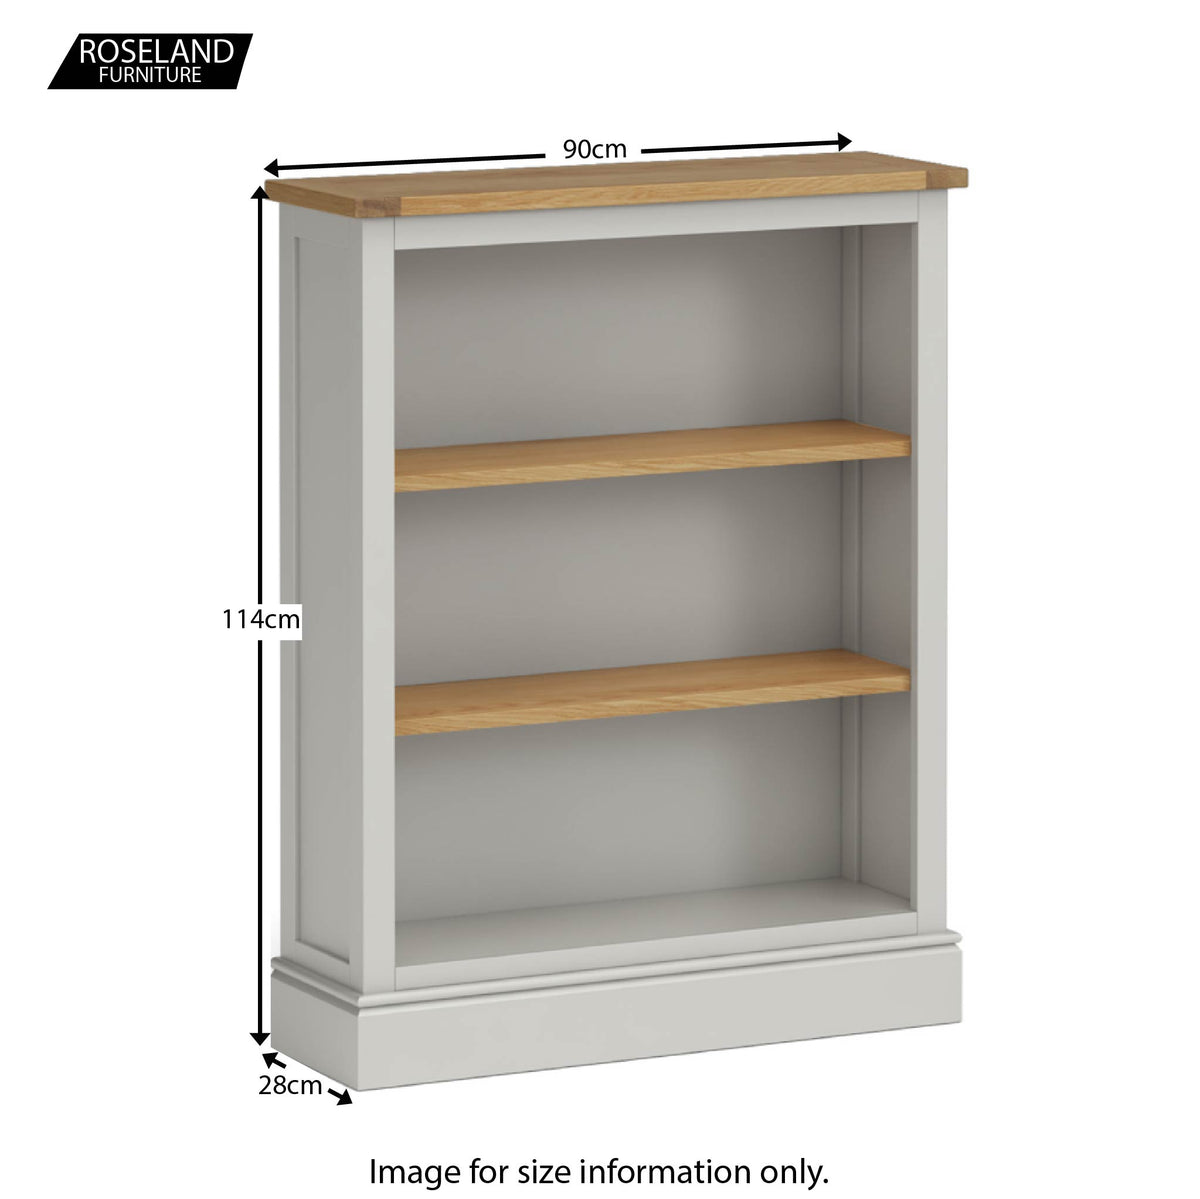 Chichester Small Bookcase in Grey - Size Guide